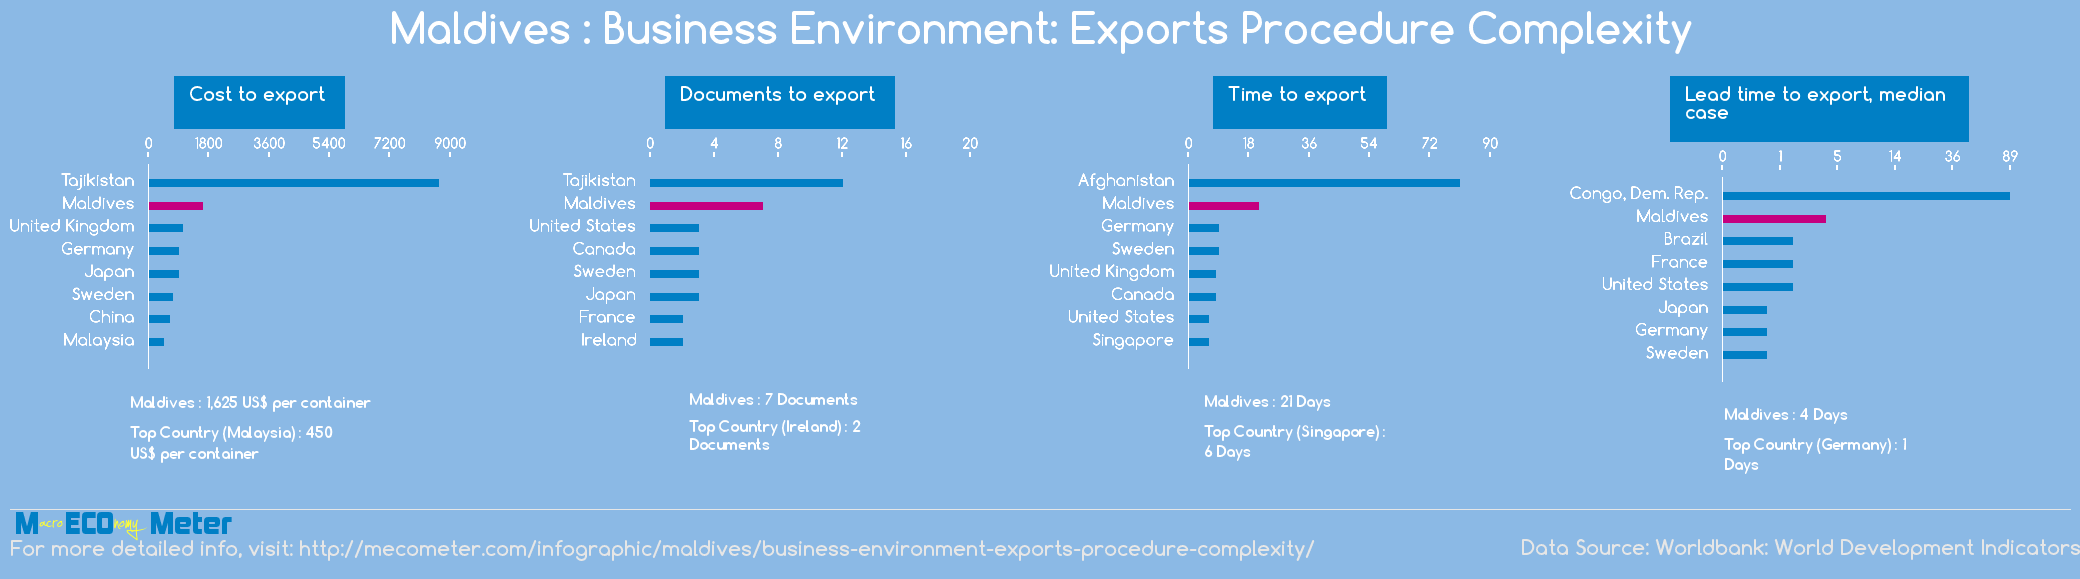 Maldives : Business Environment: Exports Procedure Complexity